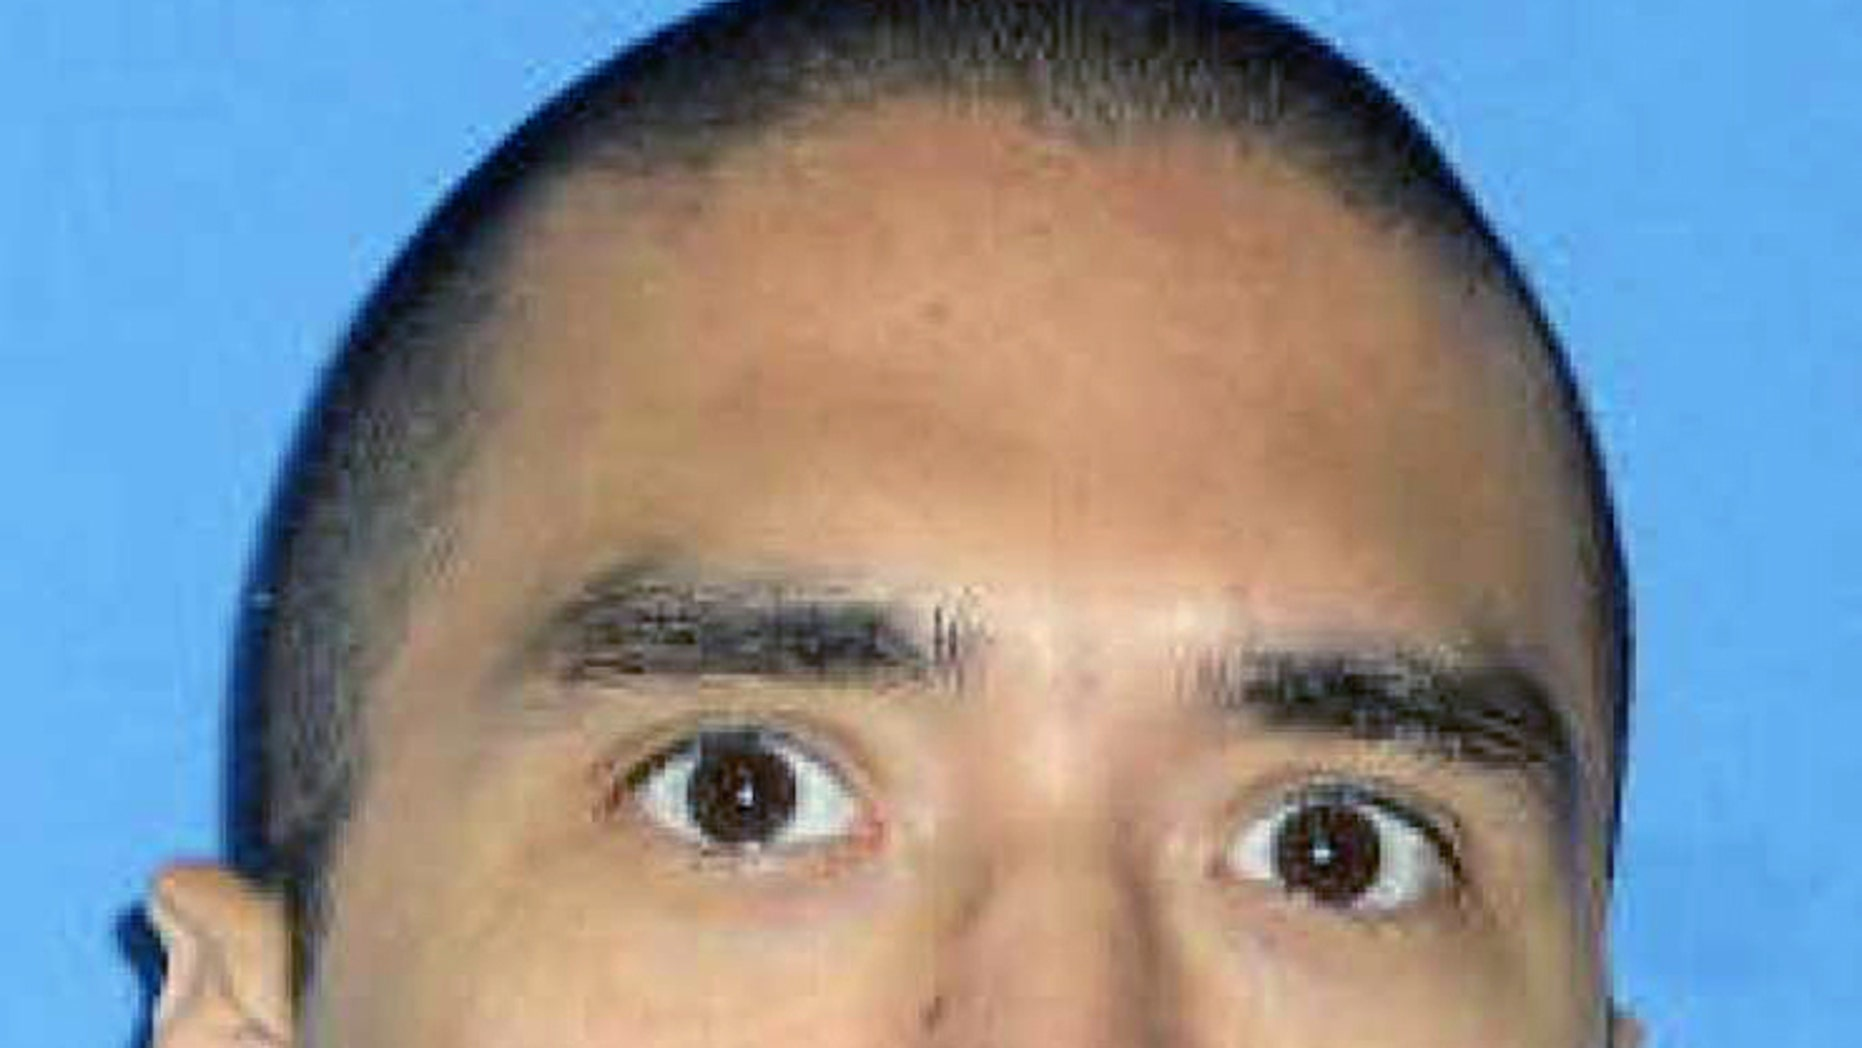 This photo released by the Texas Department of Criminal Justice shows death row inmate Rolando Ruiz. The convicted hit man scheduled to be put to death Wednesday, Aug. 31, 2016 for a murder-for-hire plot that left a woman dead more than 23 years ago has received a reprieve from a state appeals court _ the second he has received within a week of an execution date. (Texas Department of Criminal Justice via AP)